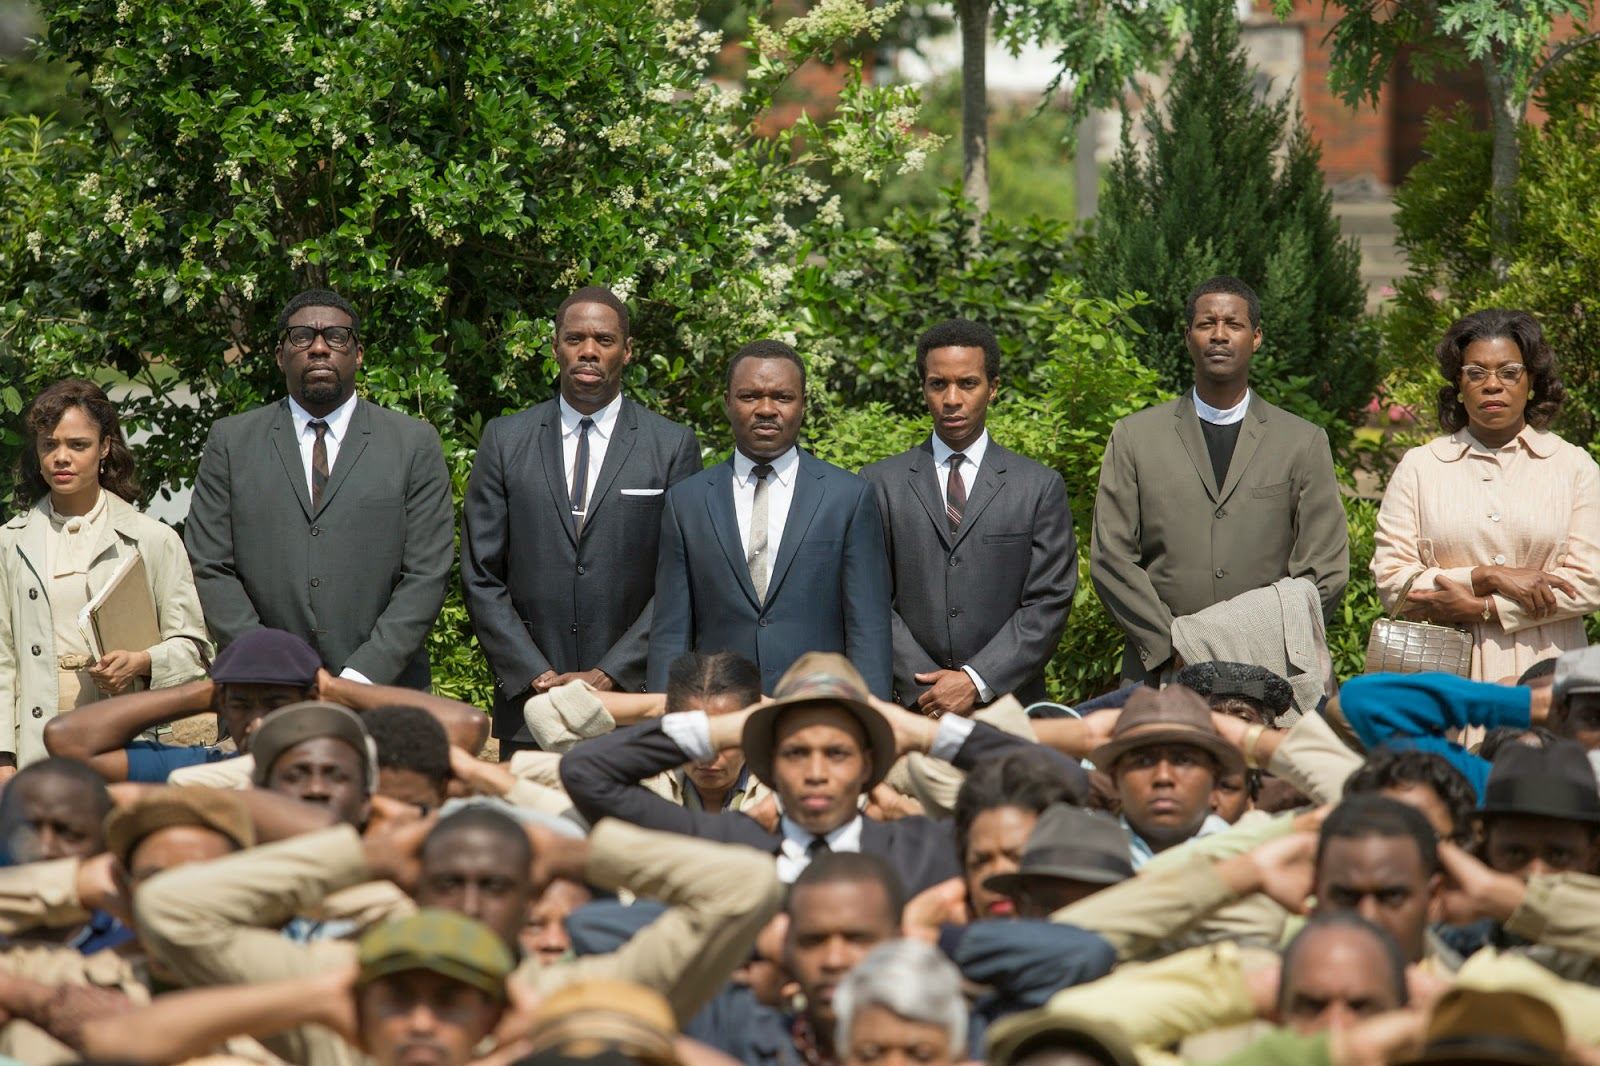 Martin Luther King Jr. (David Oyelowo)